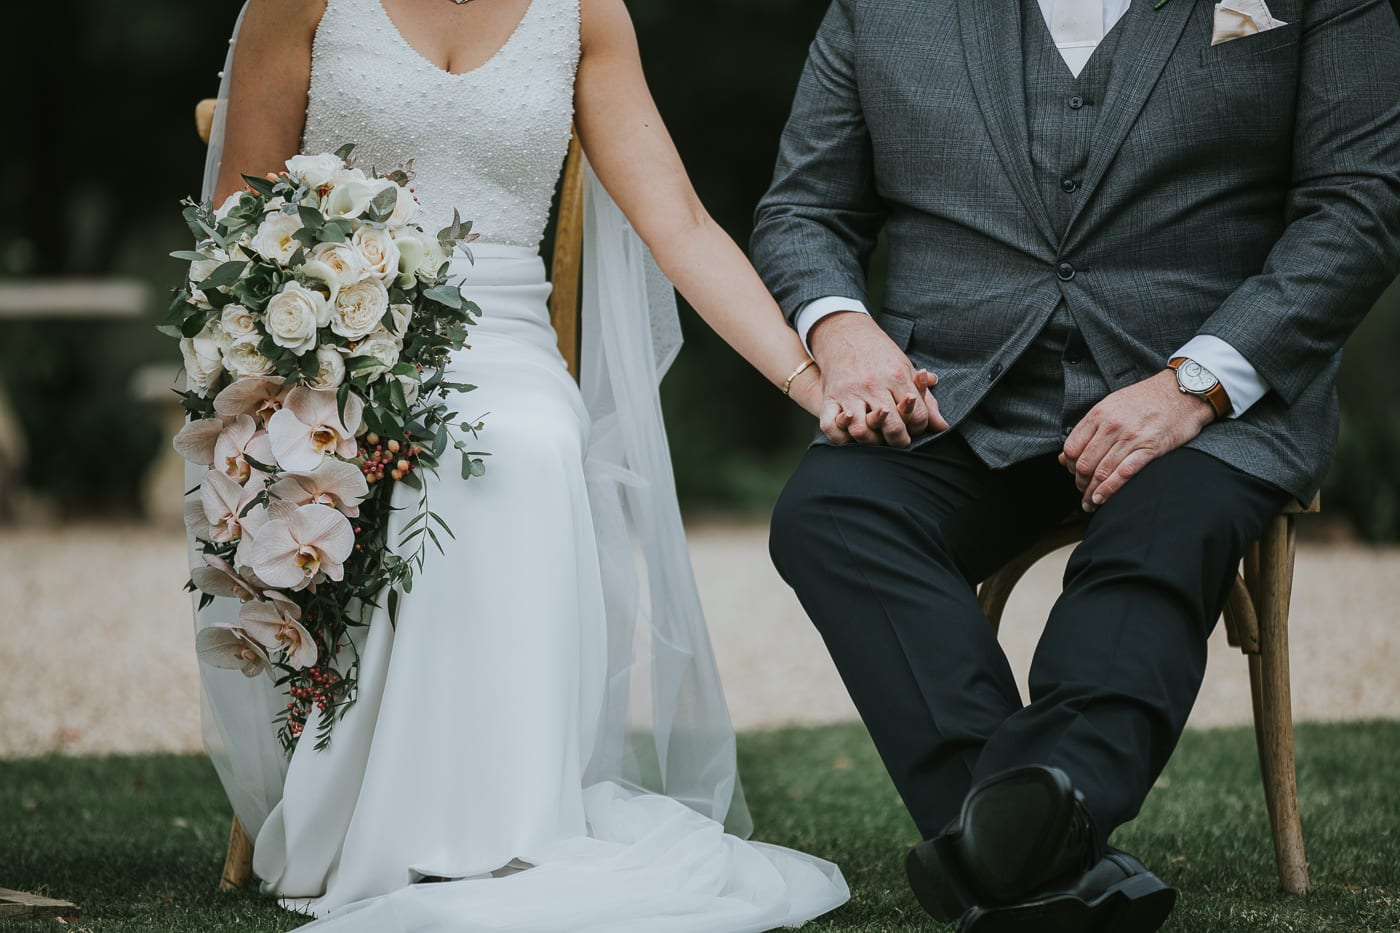 Bride and groom on chairs in garden wedding ceremony